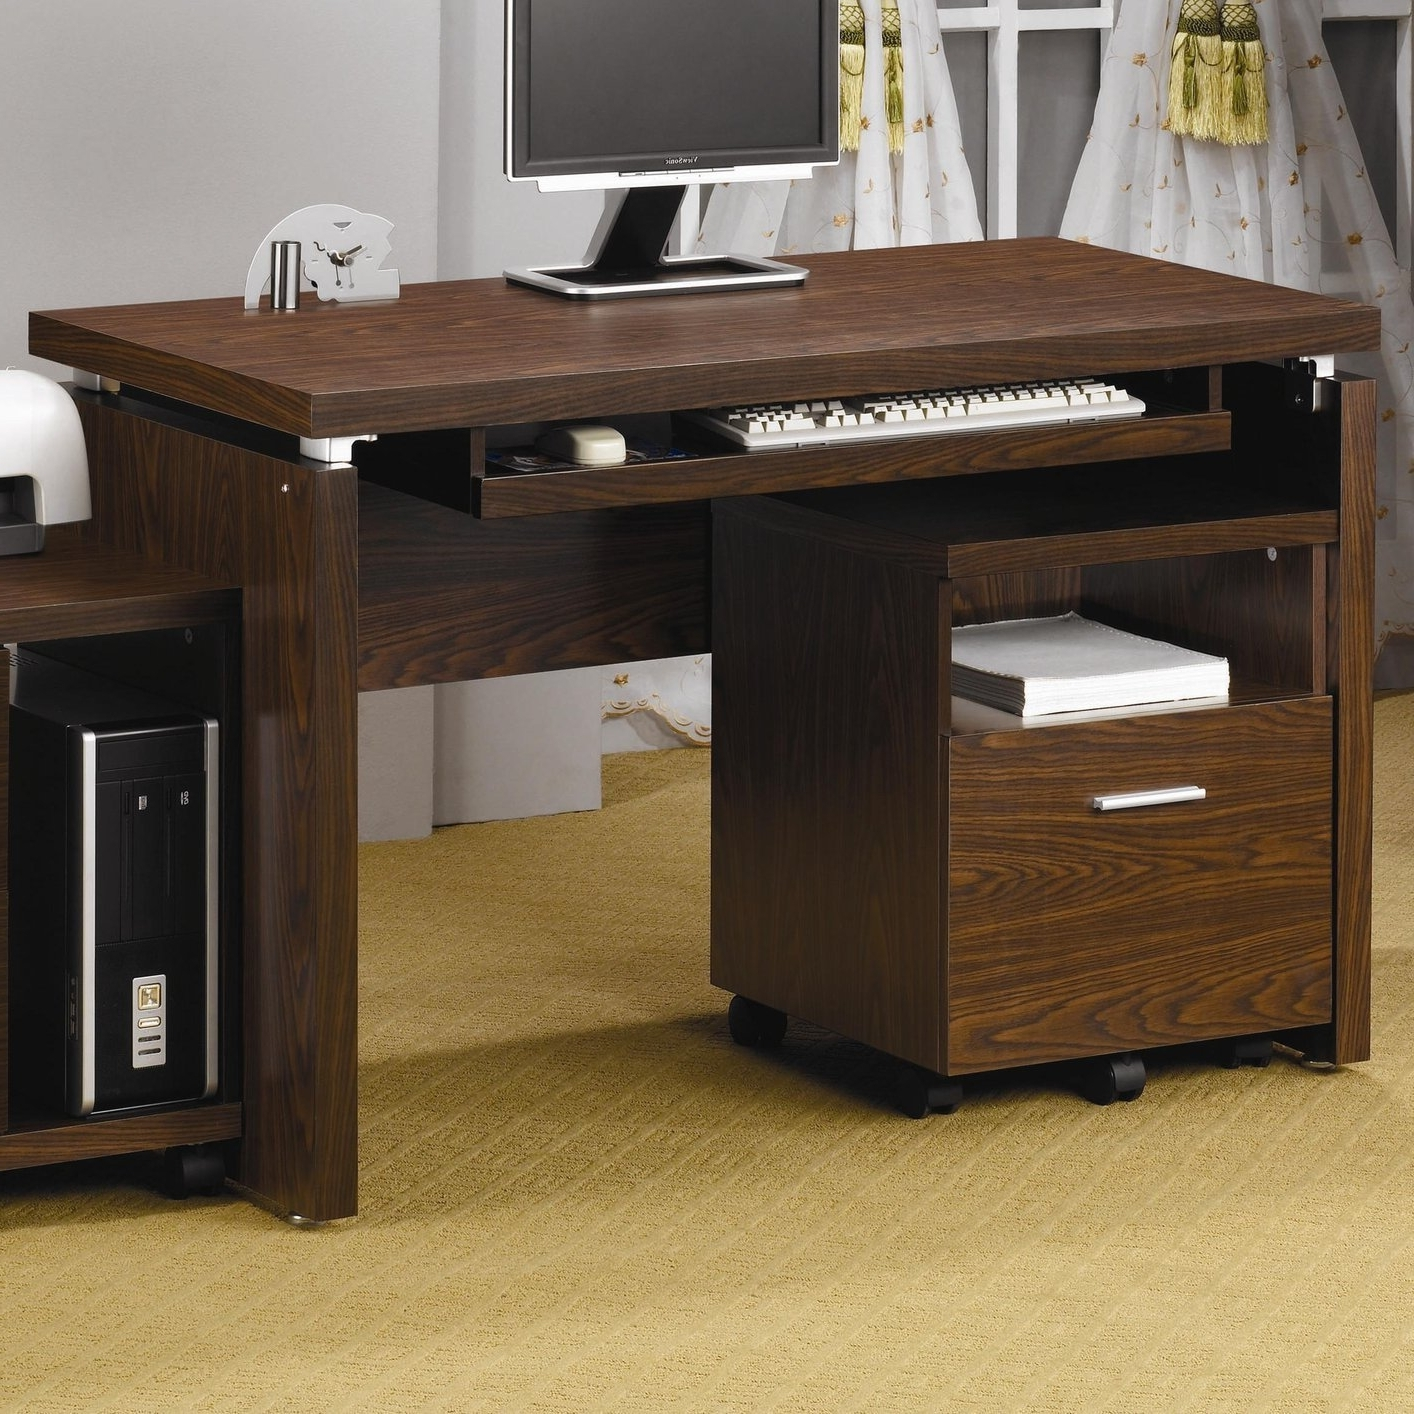 Black Wood Computer Desk – Steal A Sofa Furniture Outlet Los Intended For Most Current Computer Desks (View 8 of 20)